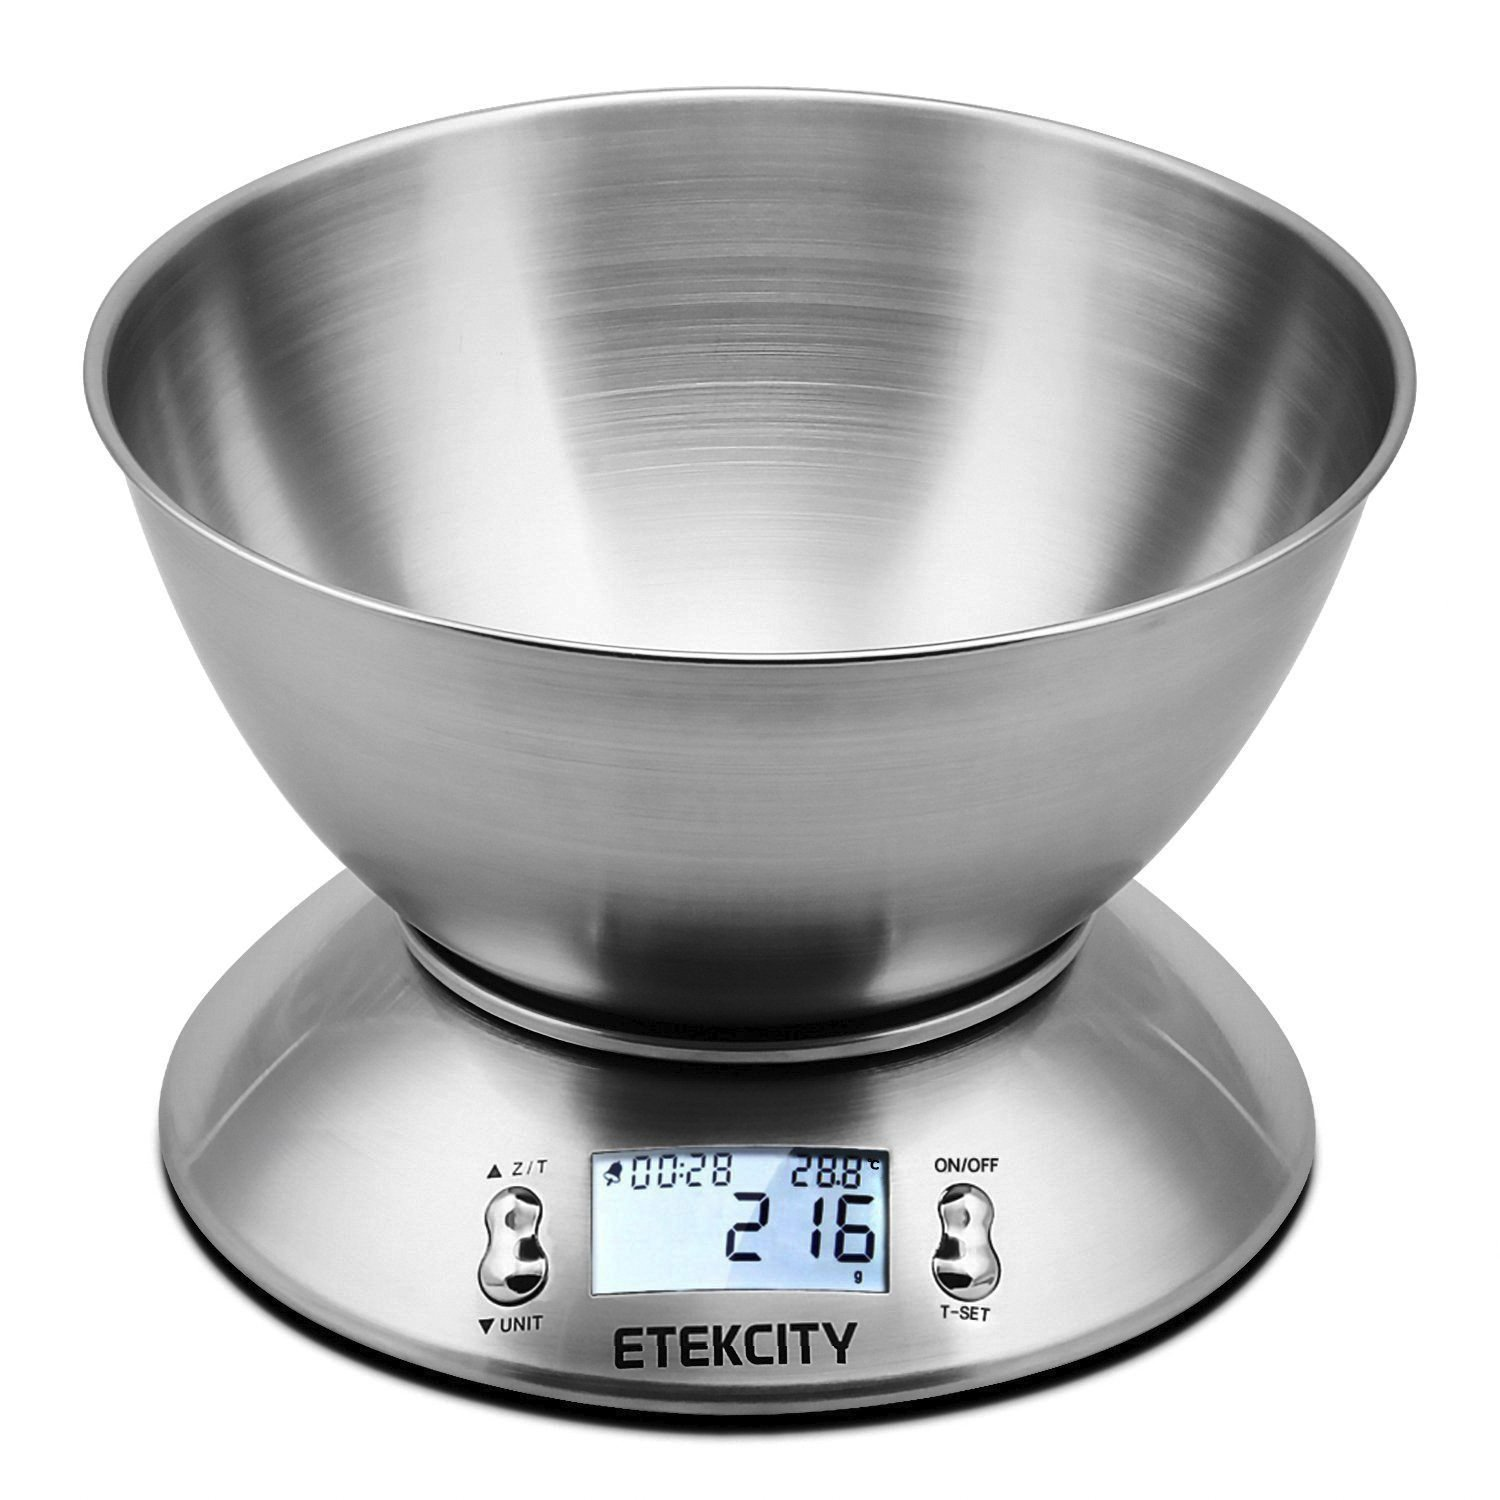 Etekcity 11lb/5kg Kitchen Scales, Stainless Steel Digital Cooking Food Scales with Detachable Mixing Bowl, Ambient Temperature Sensor and Kitchen Timer Alarm, Backlight LCD Display, Silver Les balances électroniques